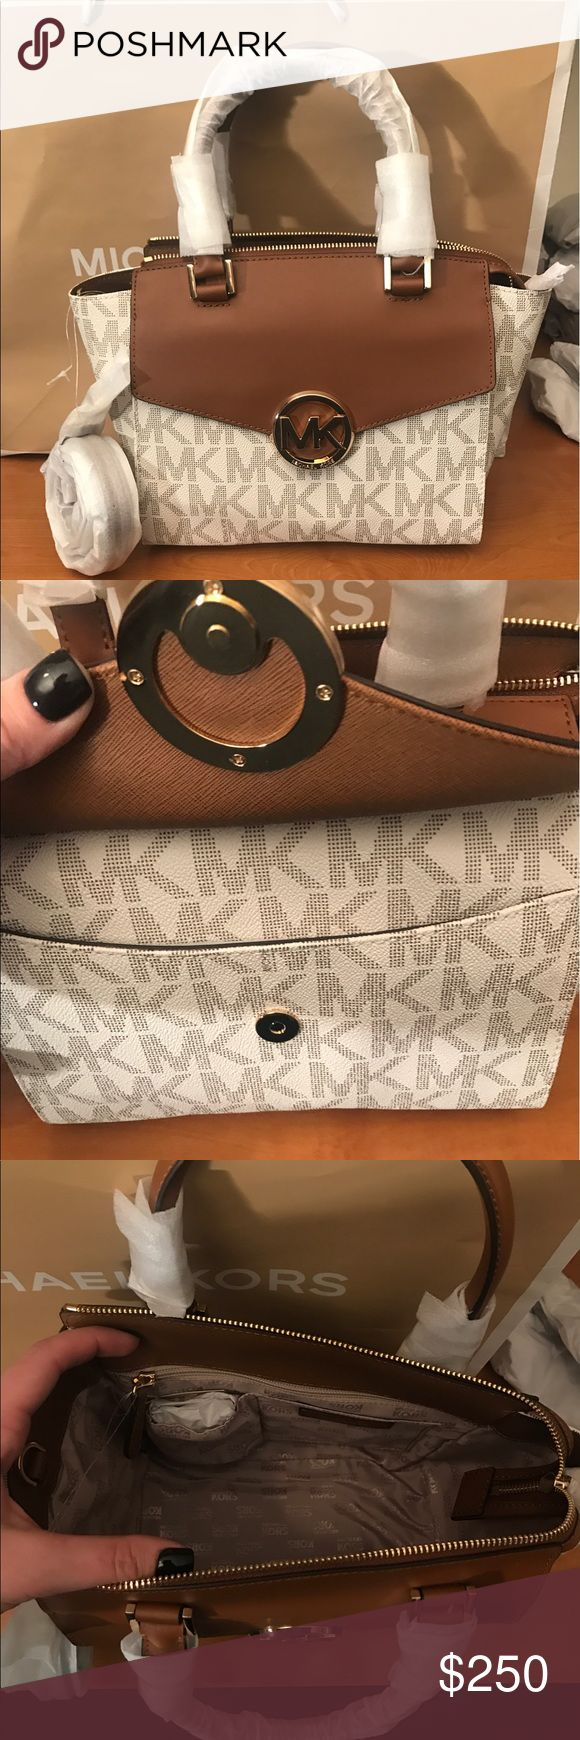 ♈️$200! Michael Kors Hudson Gorgeous vanilla michael kors color with brown accent and gold hard ware. Perfect size cross body!! Michael Kors Bags Crossbody Bags